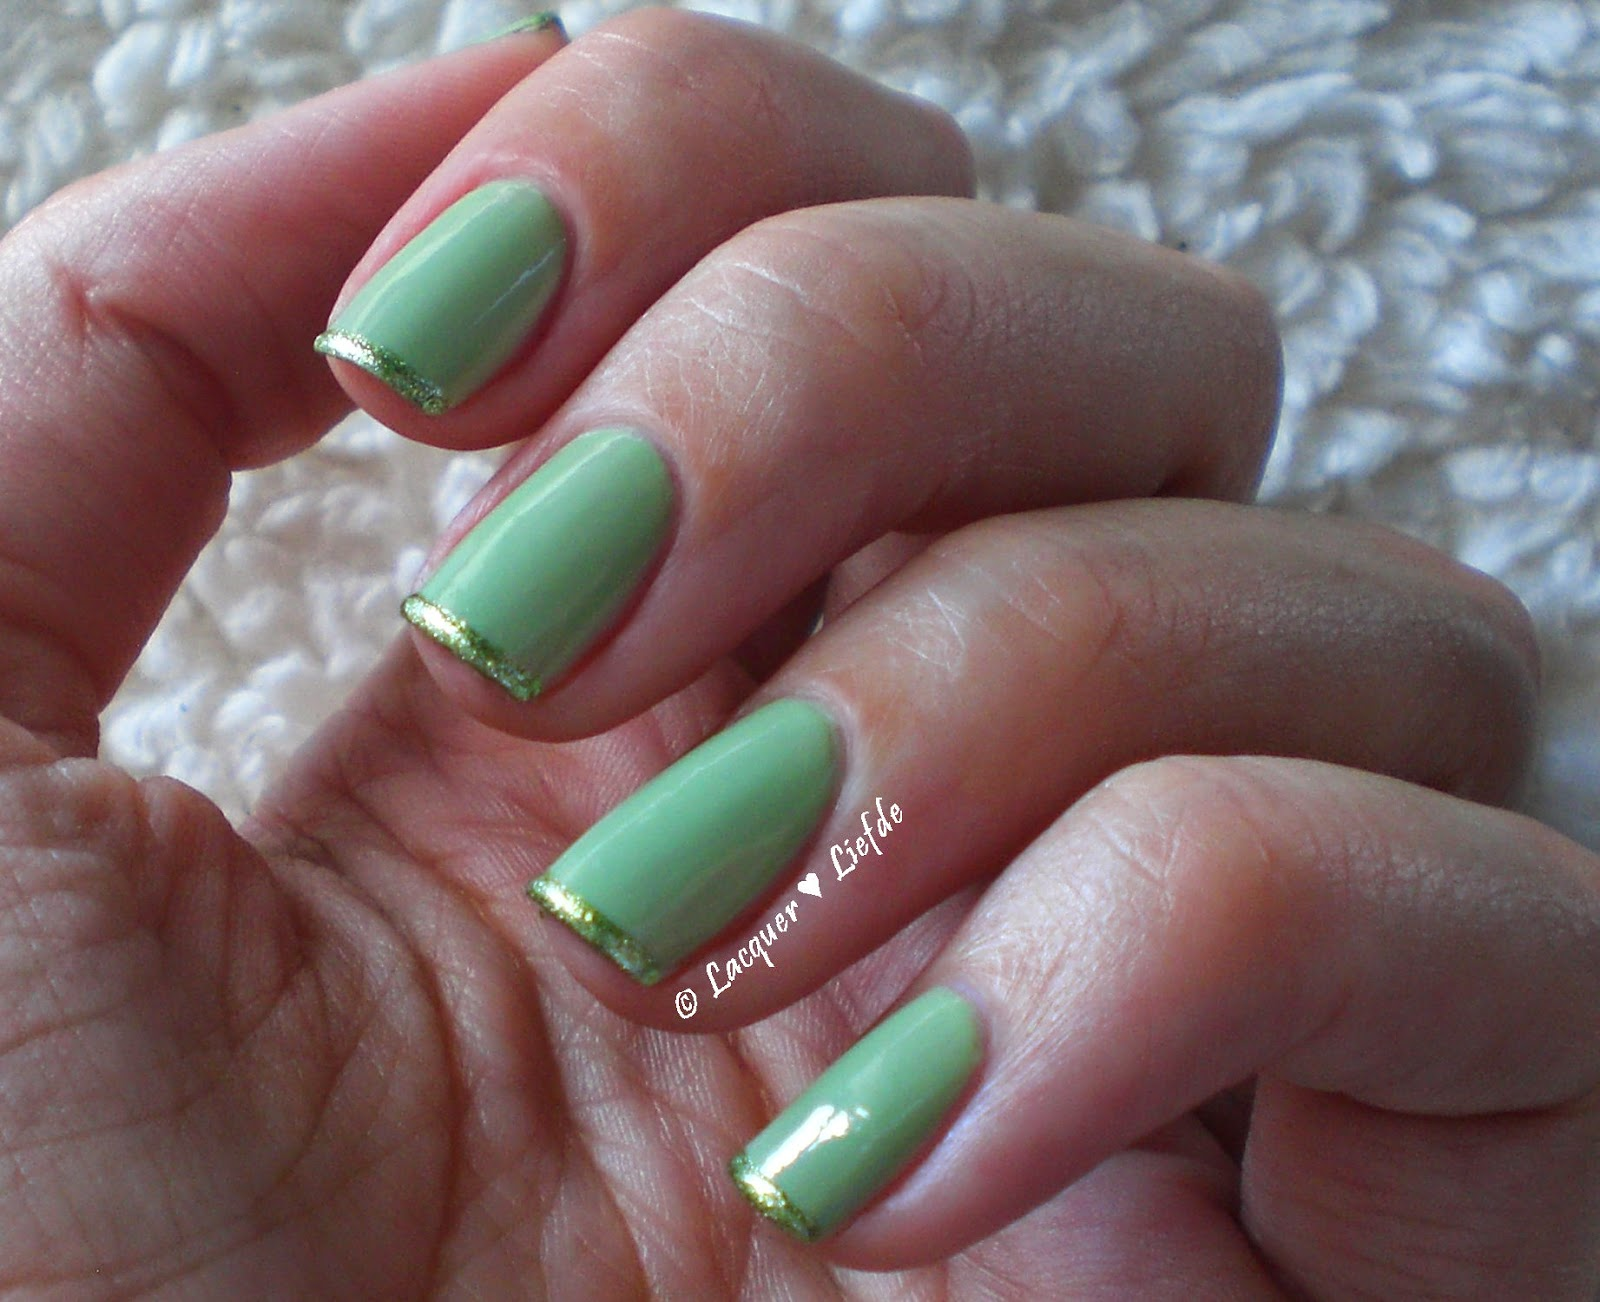 Orly - Coachella Dweller with Models Own - Green Flash